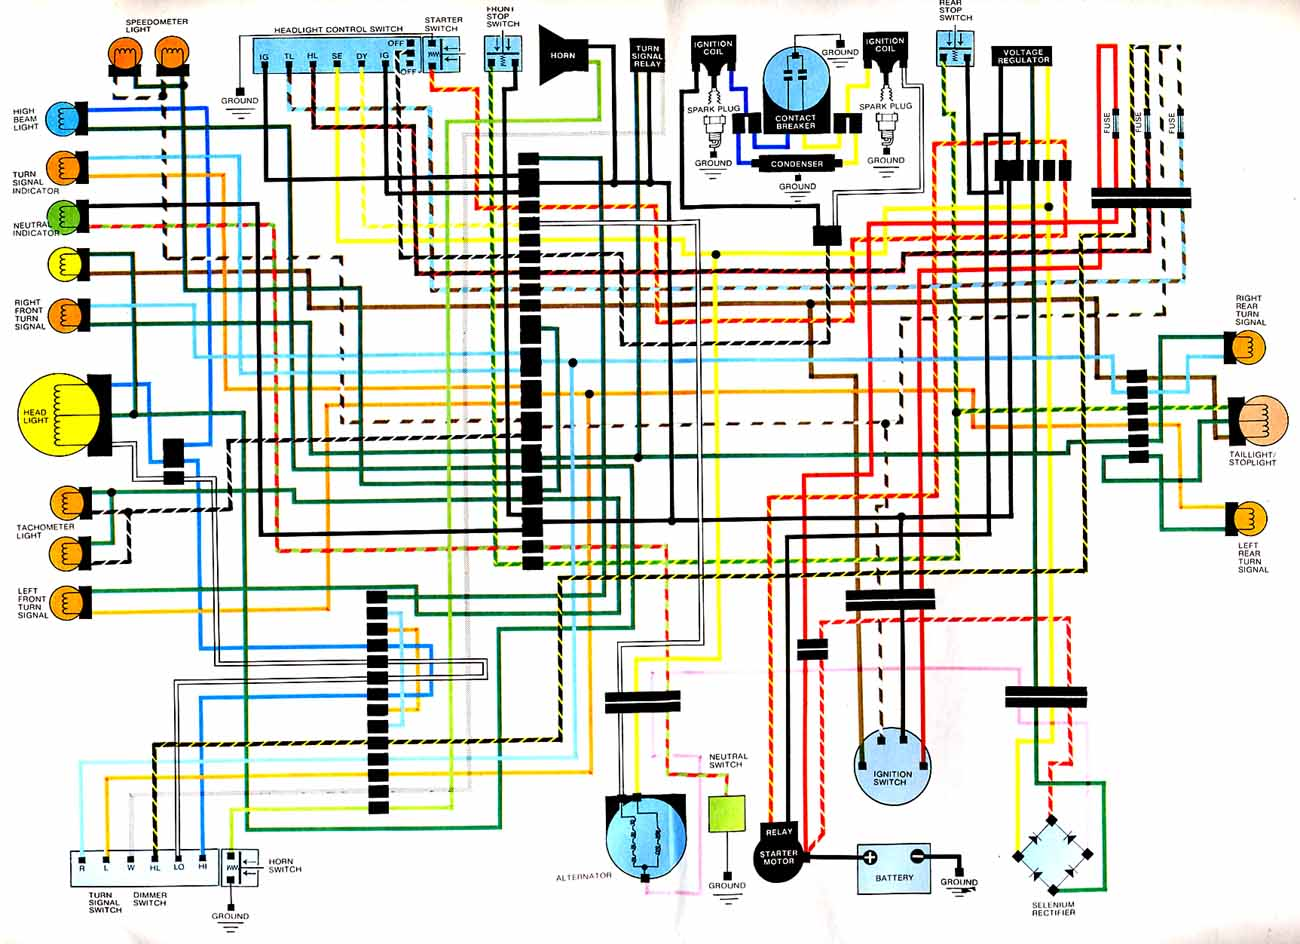 Incredible Wiring Diagrams Wiring Cloud Eachirenstrafr09Org